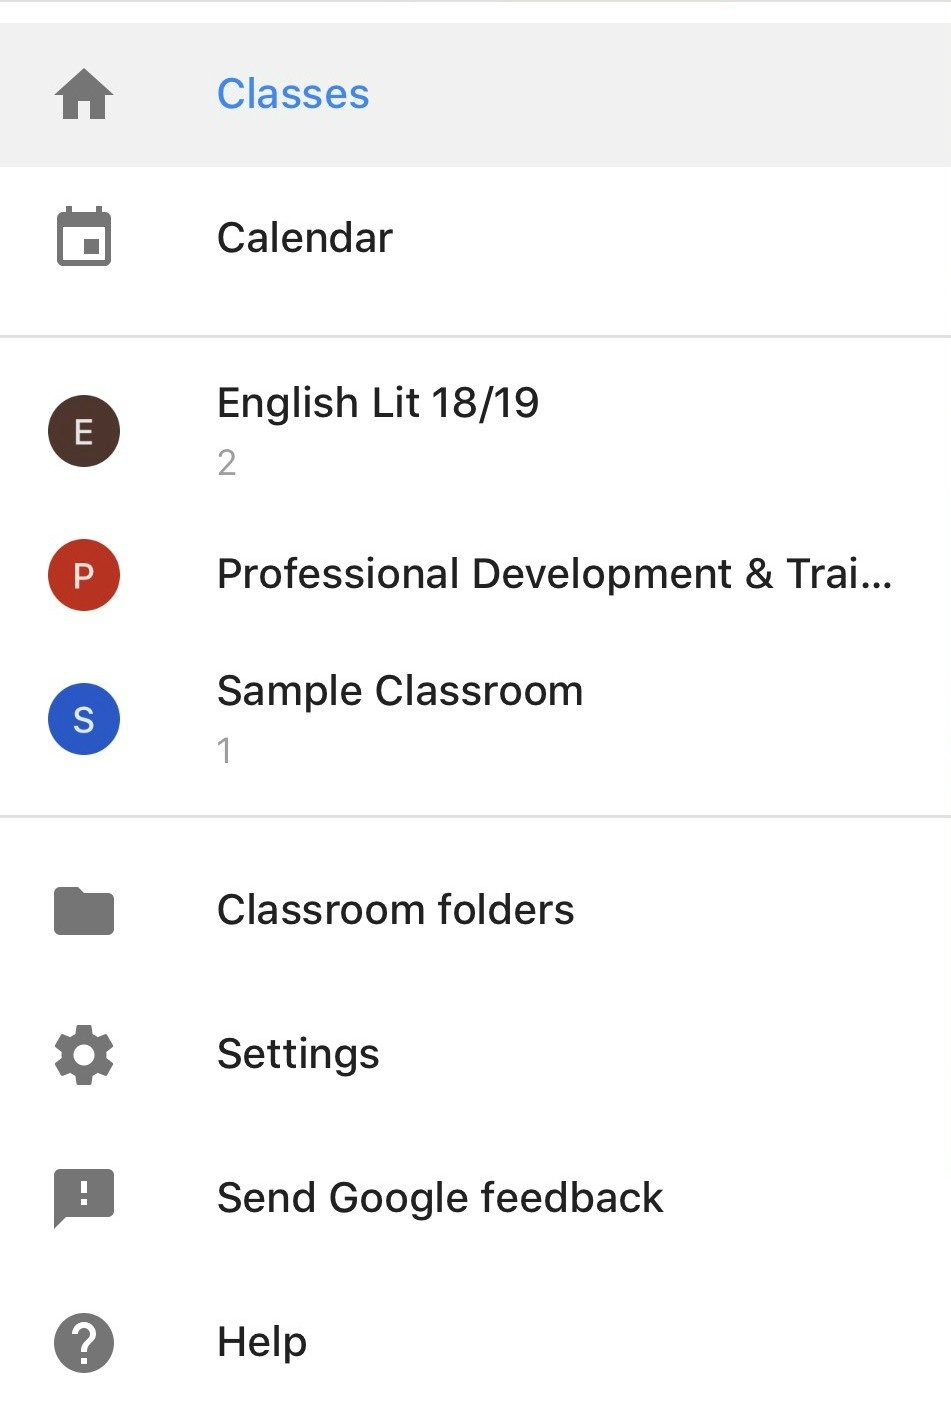 Leveraging the Amazing Mobile Features of Google Classroom